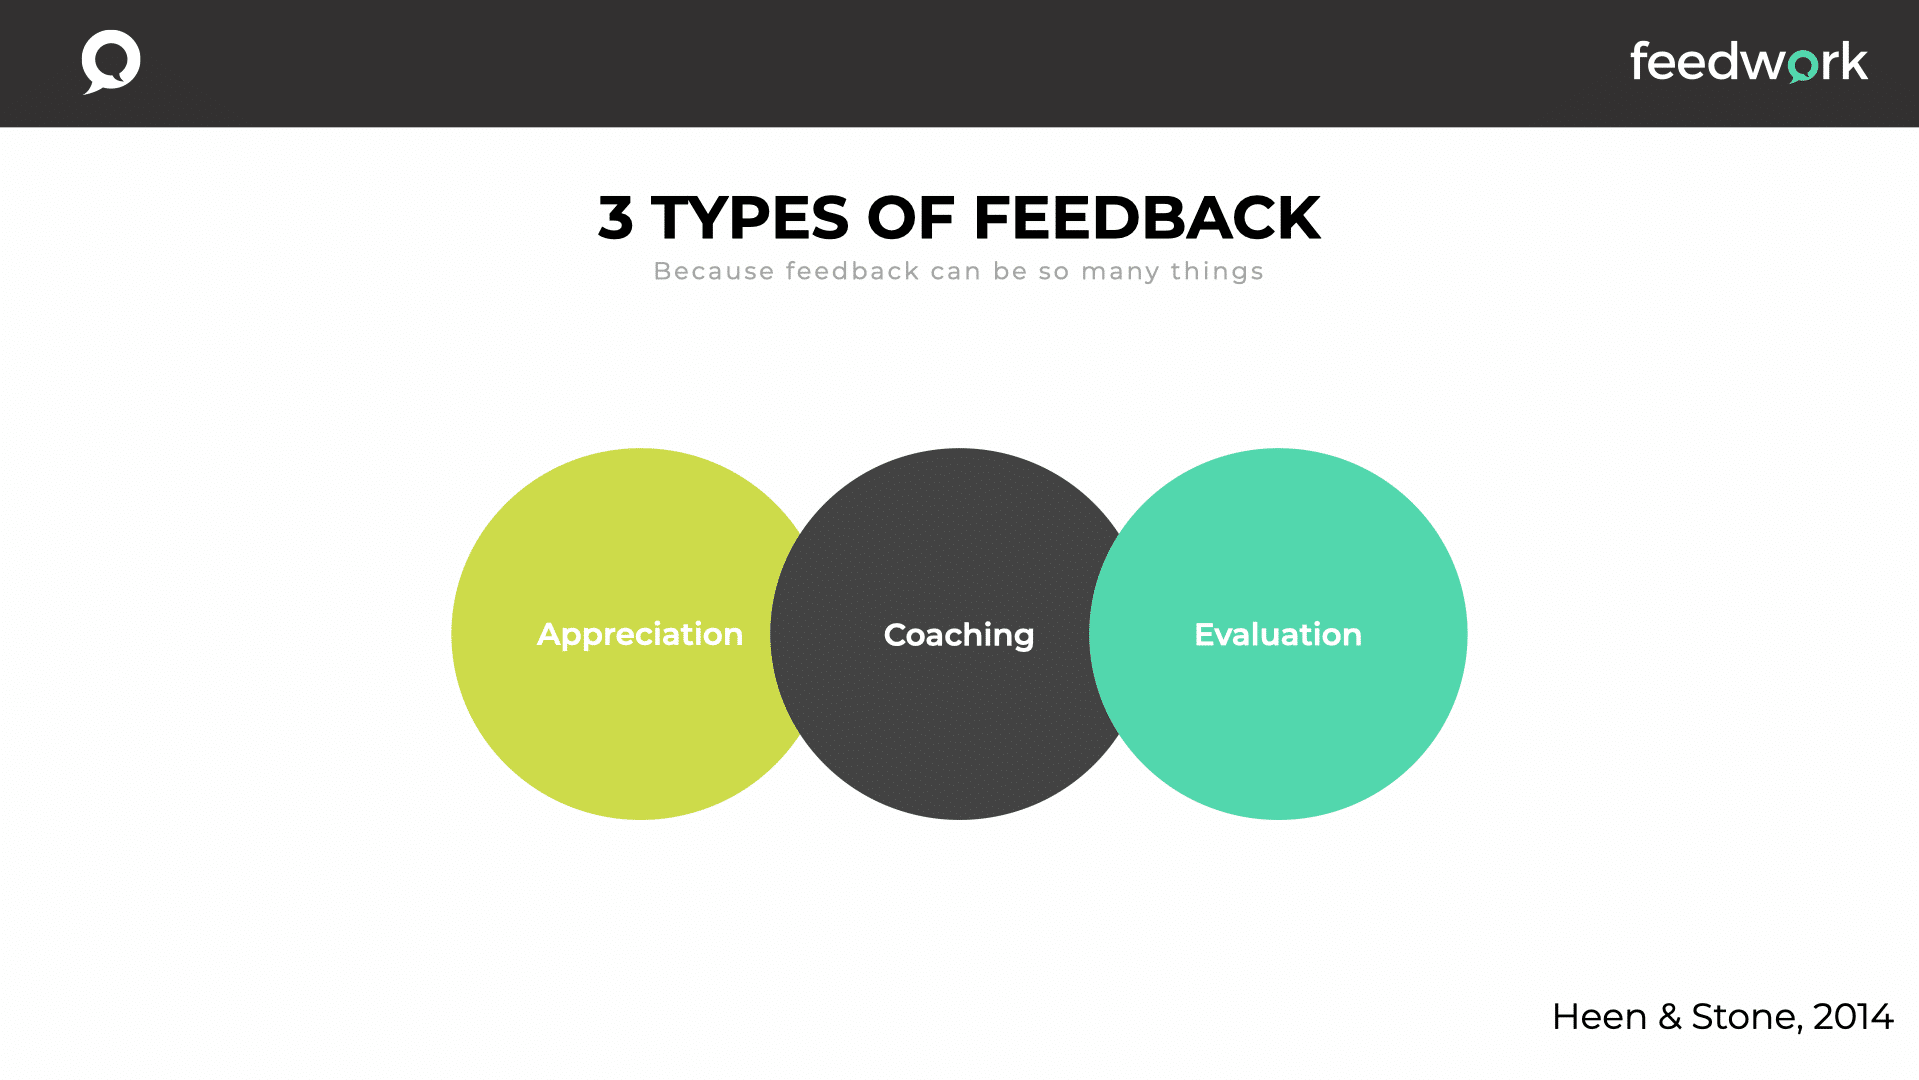 You can benefit from thinking about good feedback as these three types